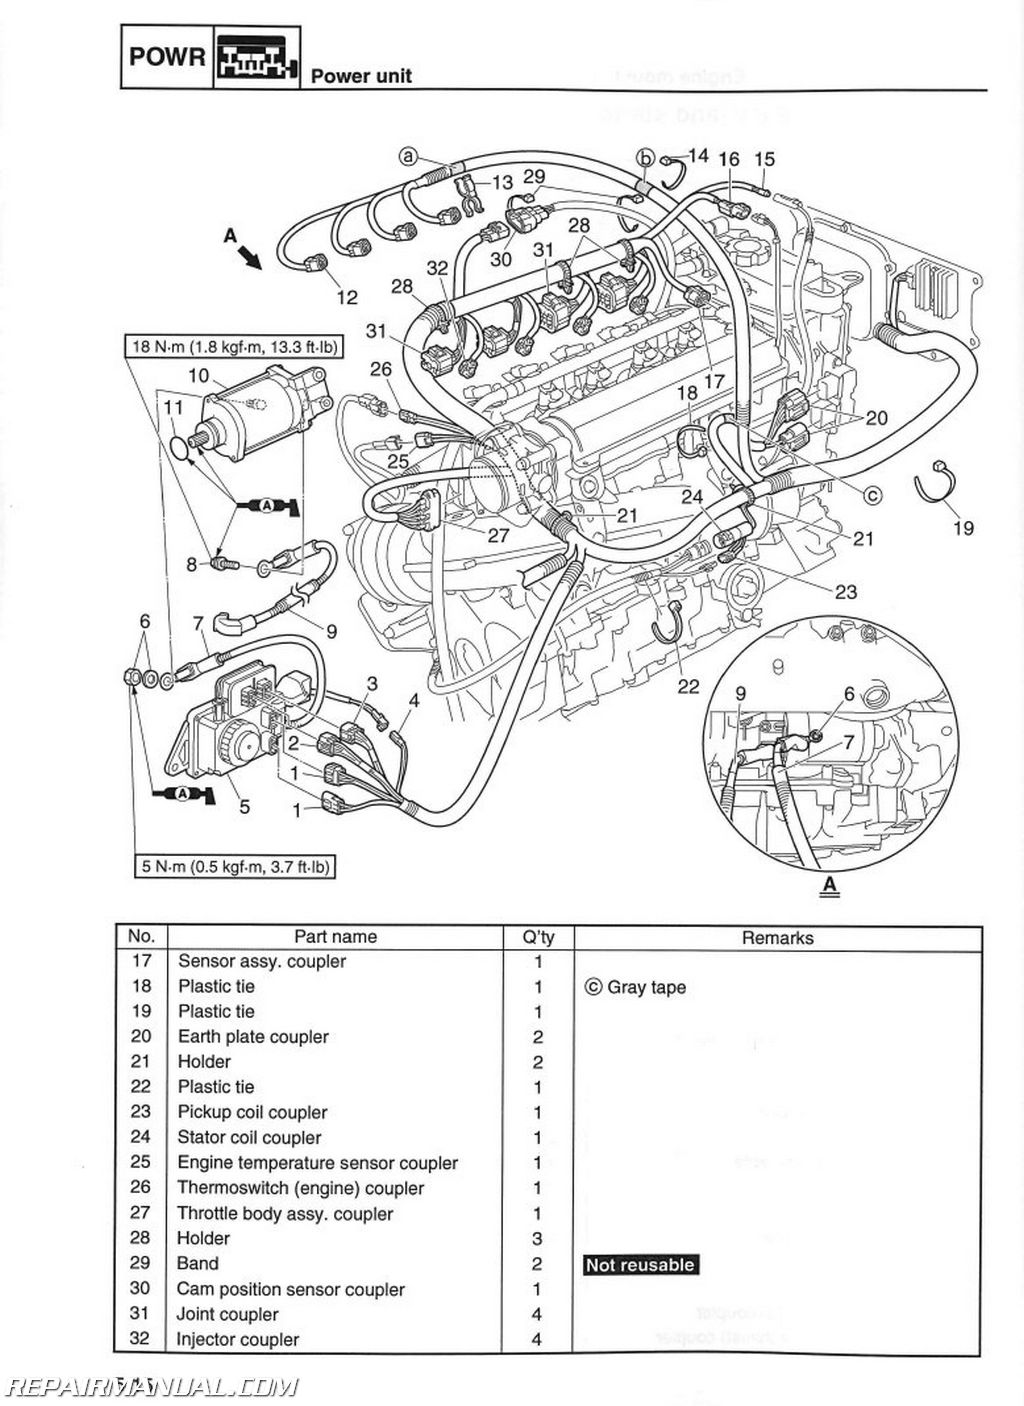 2010 2014 Yamaha Vx1100 Cruiser Deluxe 2015 V1 Sport Waverunner Wiring Harness Design Guide Service Manual